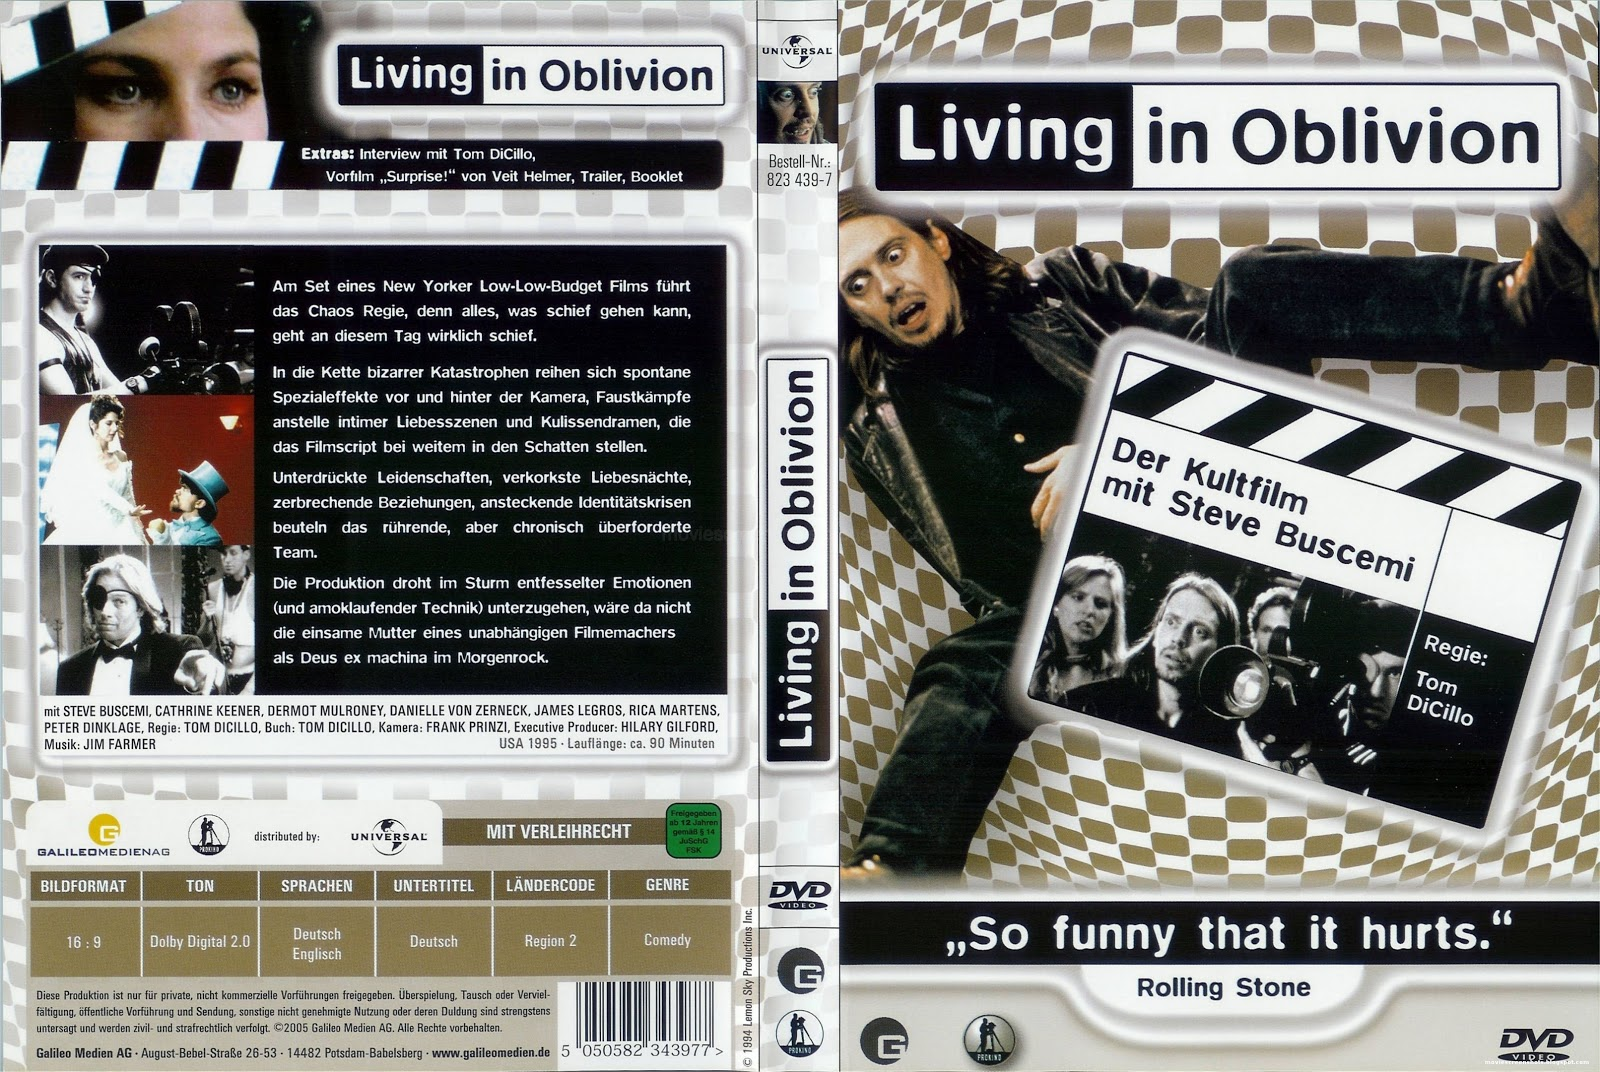 A movie analysis of living in oblivion